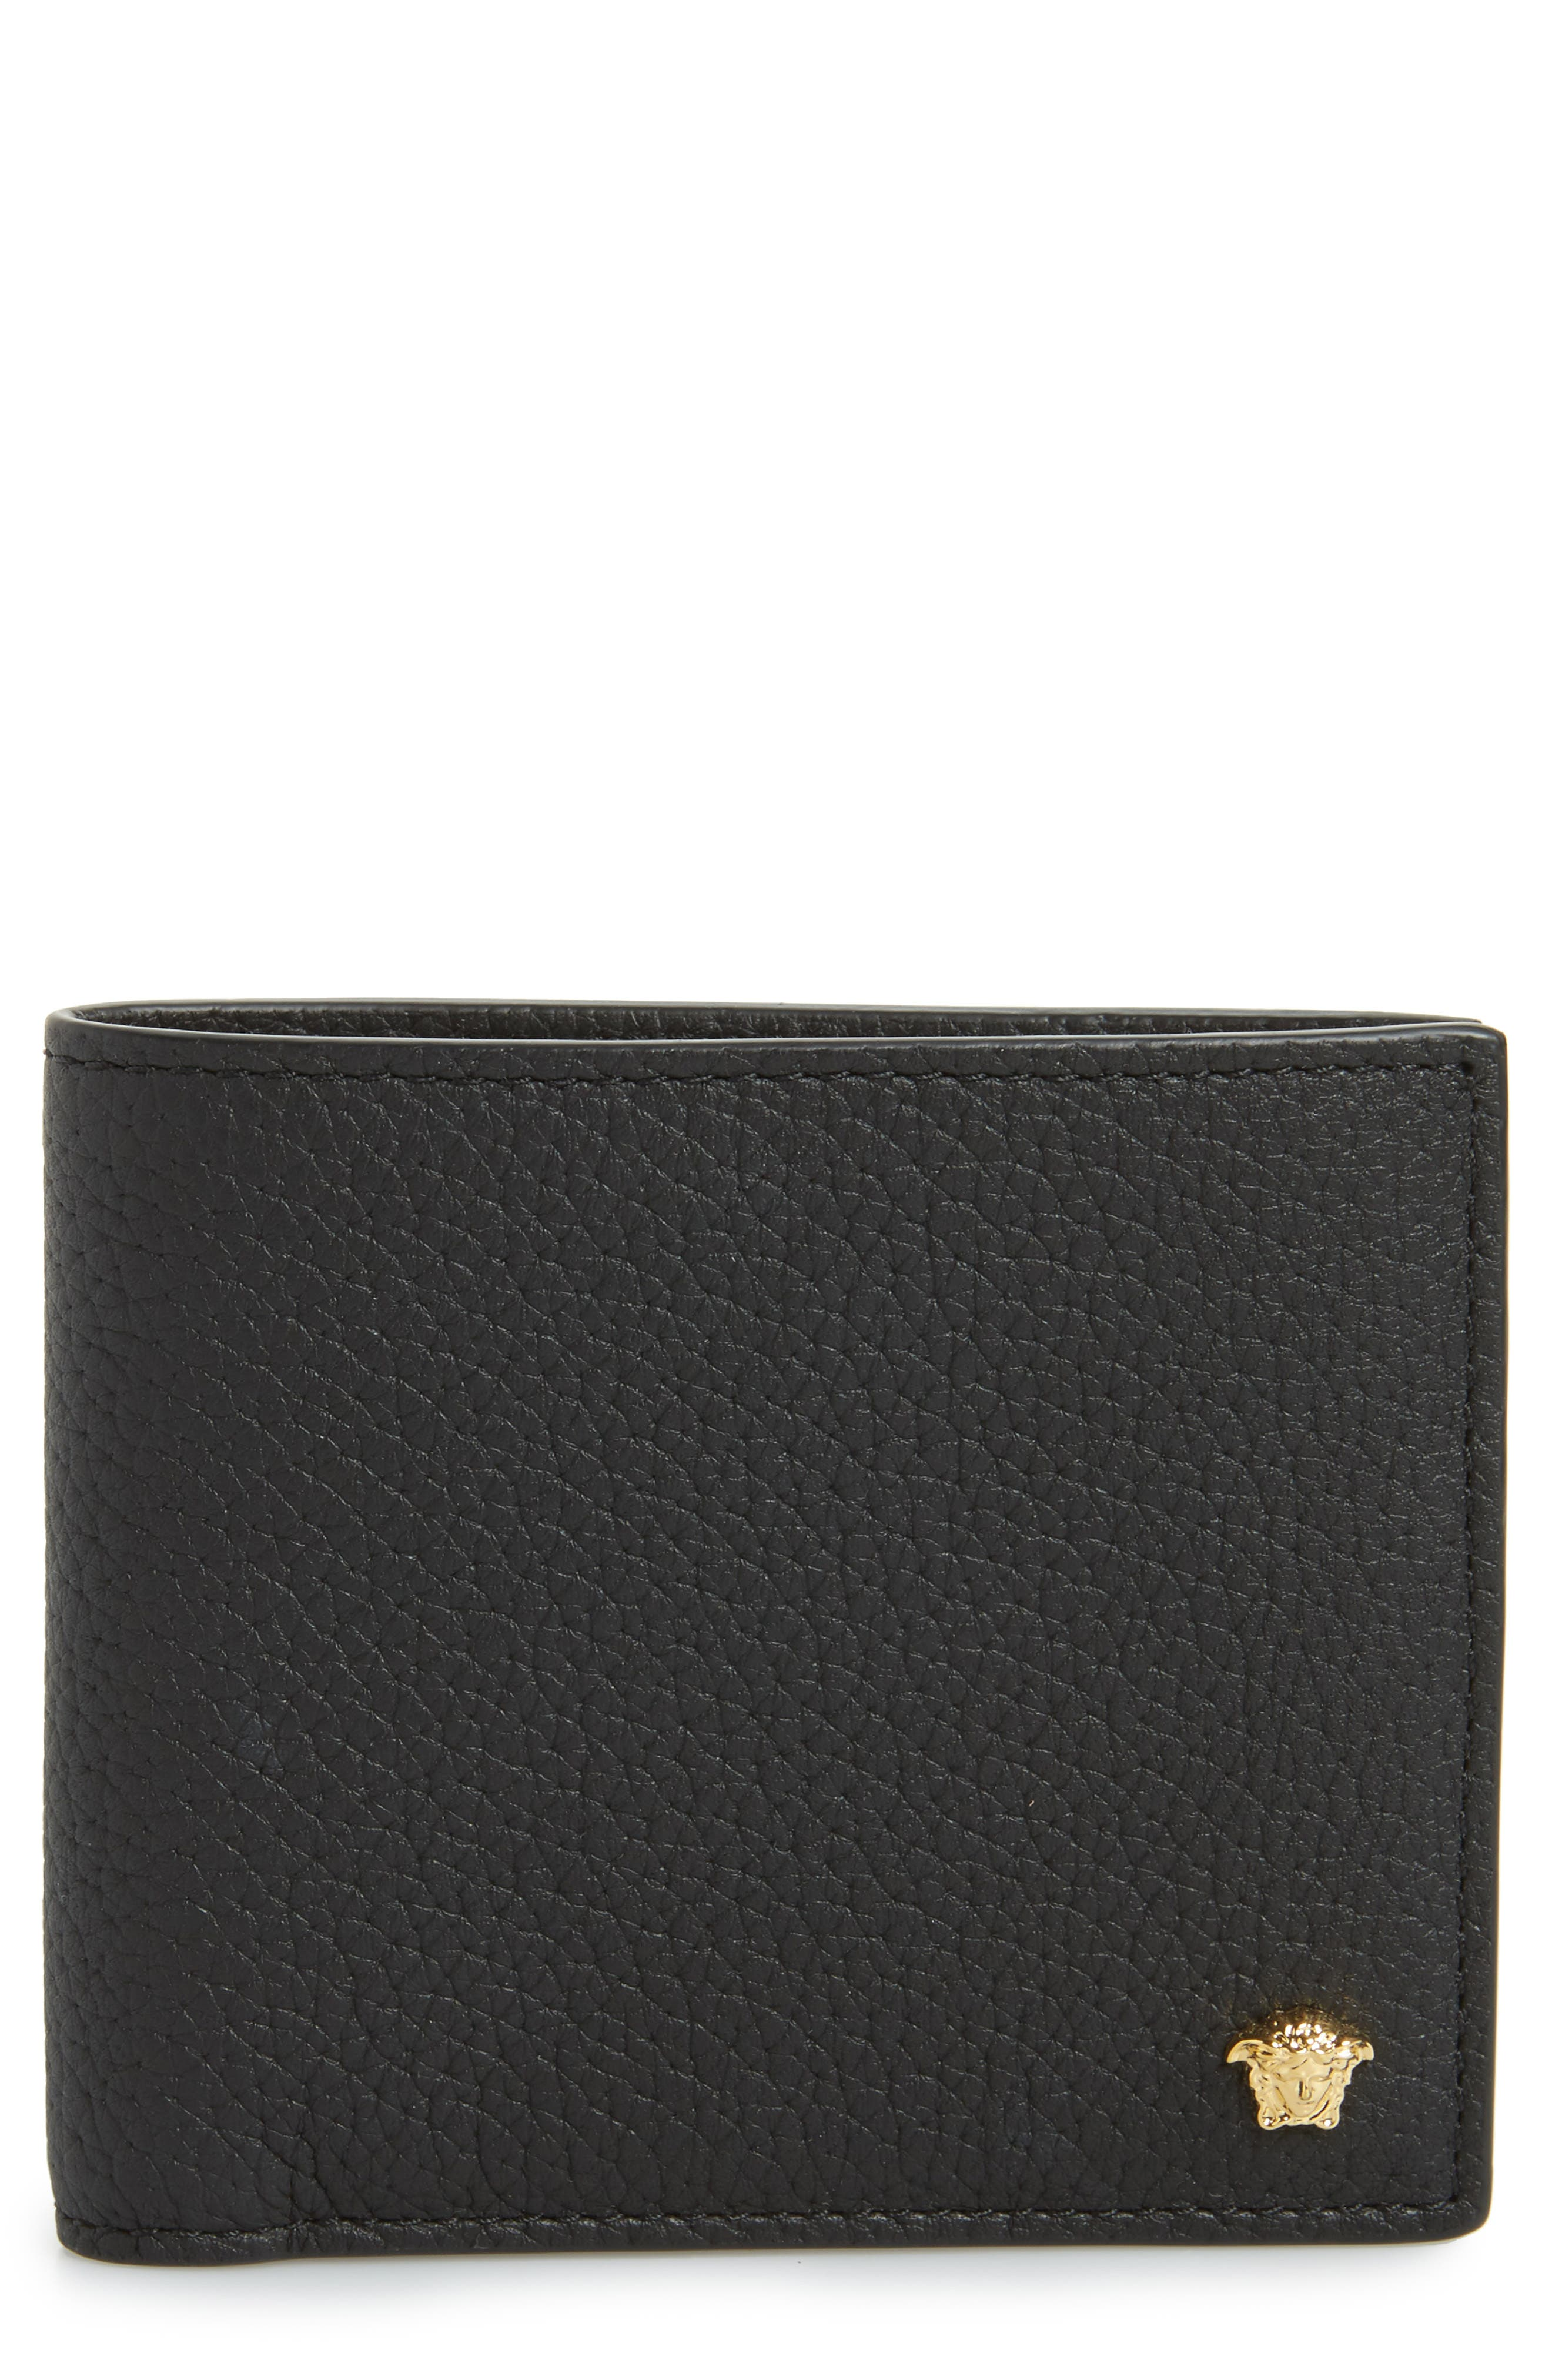 Main Image - Versace First Line Leather Wallet